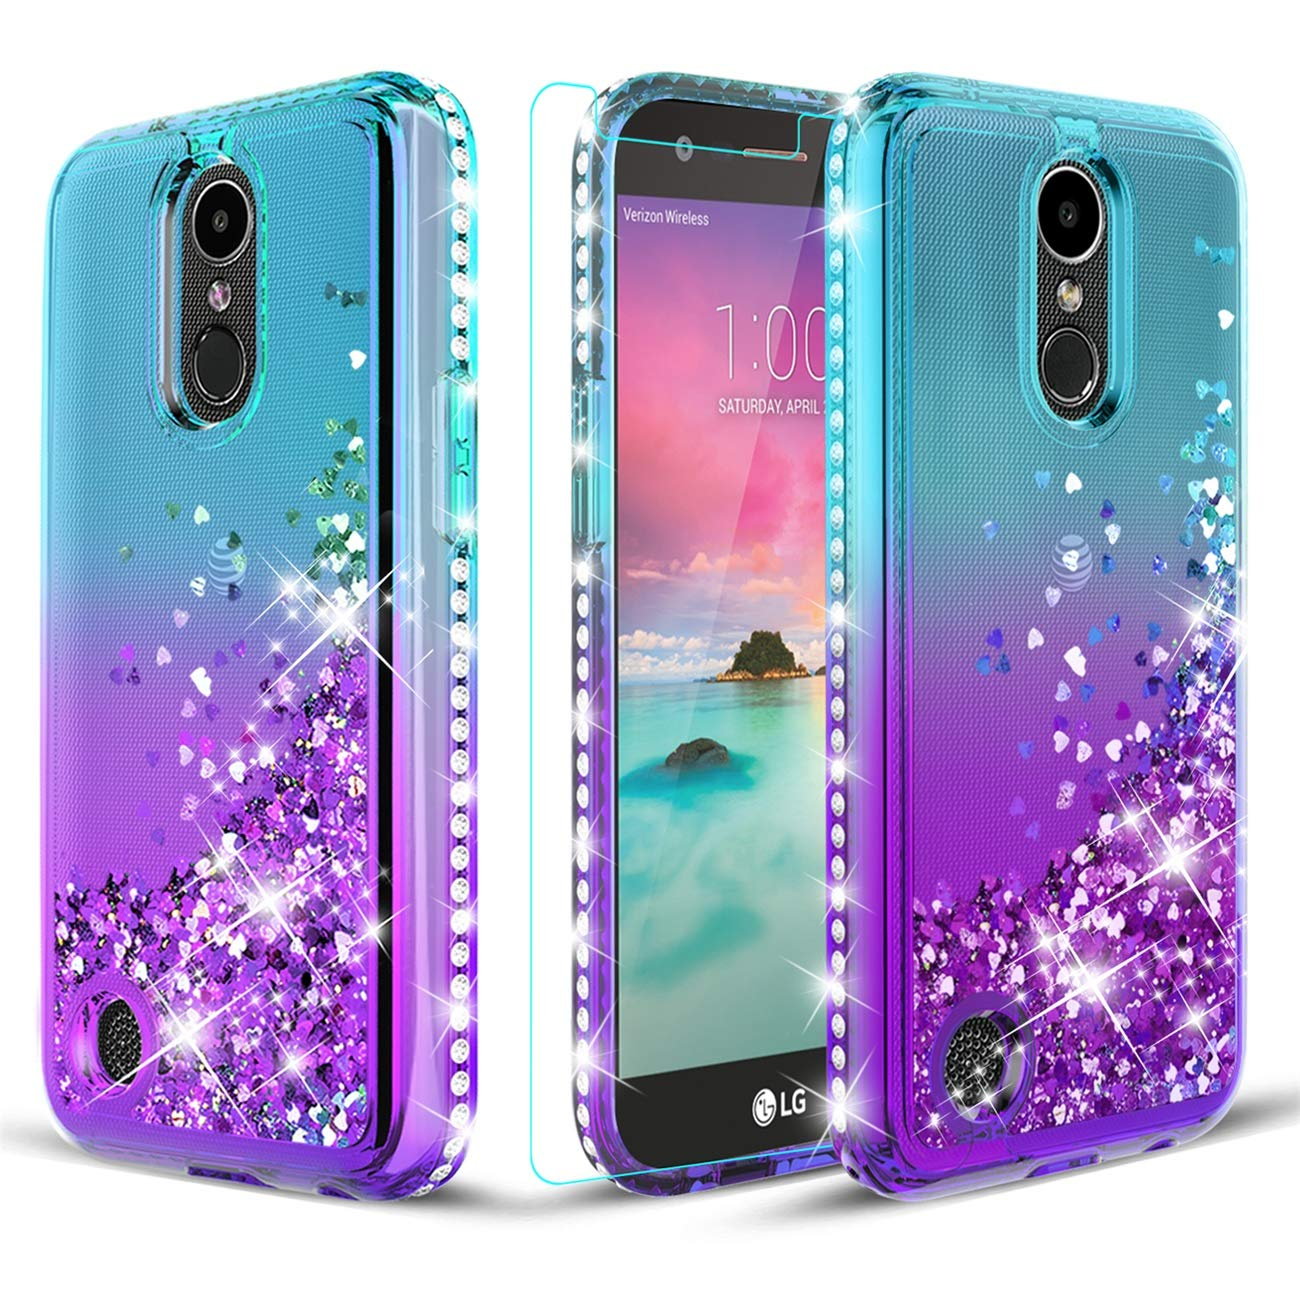 LG K20 Plus Case/K20/K20 V/Harmony/LV 5/Grace LTE Case W[Tempered Glass Screen Protector] Glitter Diamond Liquid Quicksand Waterfall Flowing Sparkle Bling Bling Case for Girls/Women-Teal/Purple